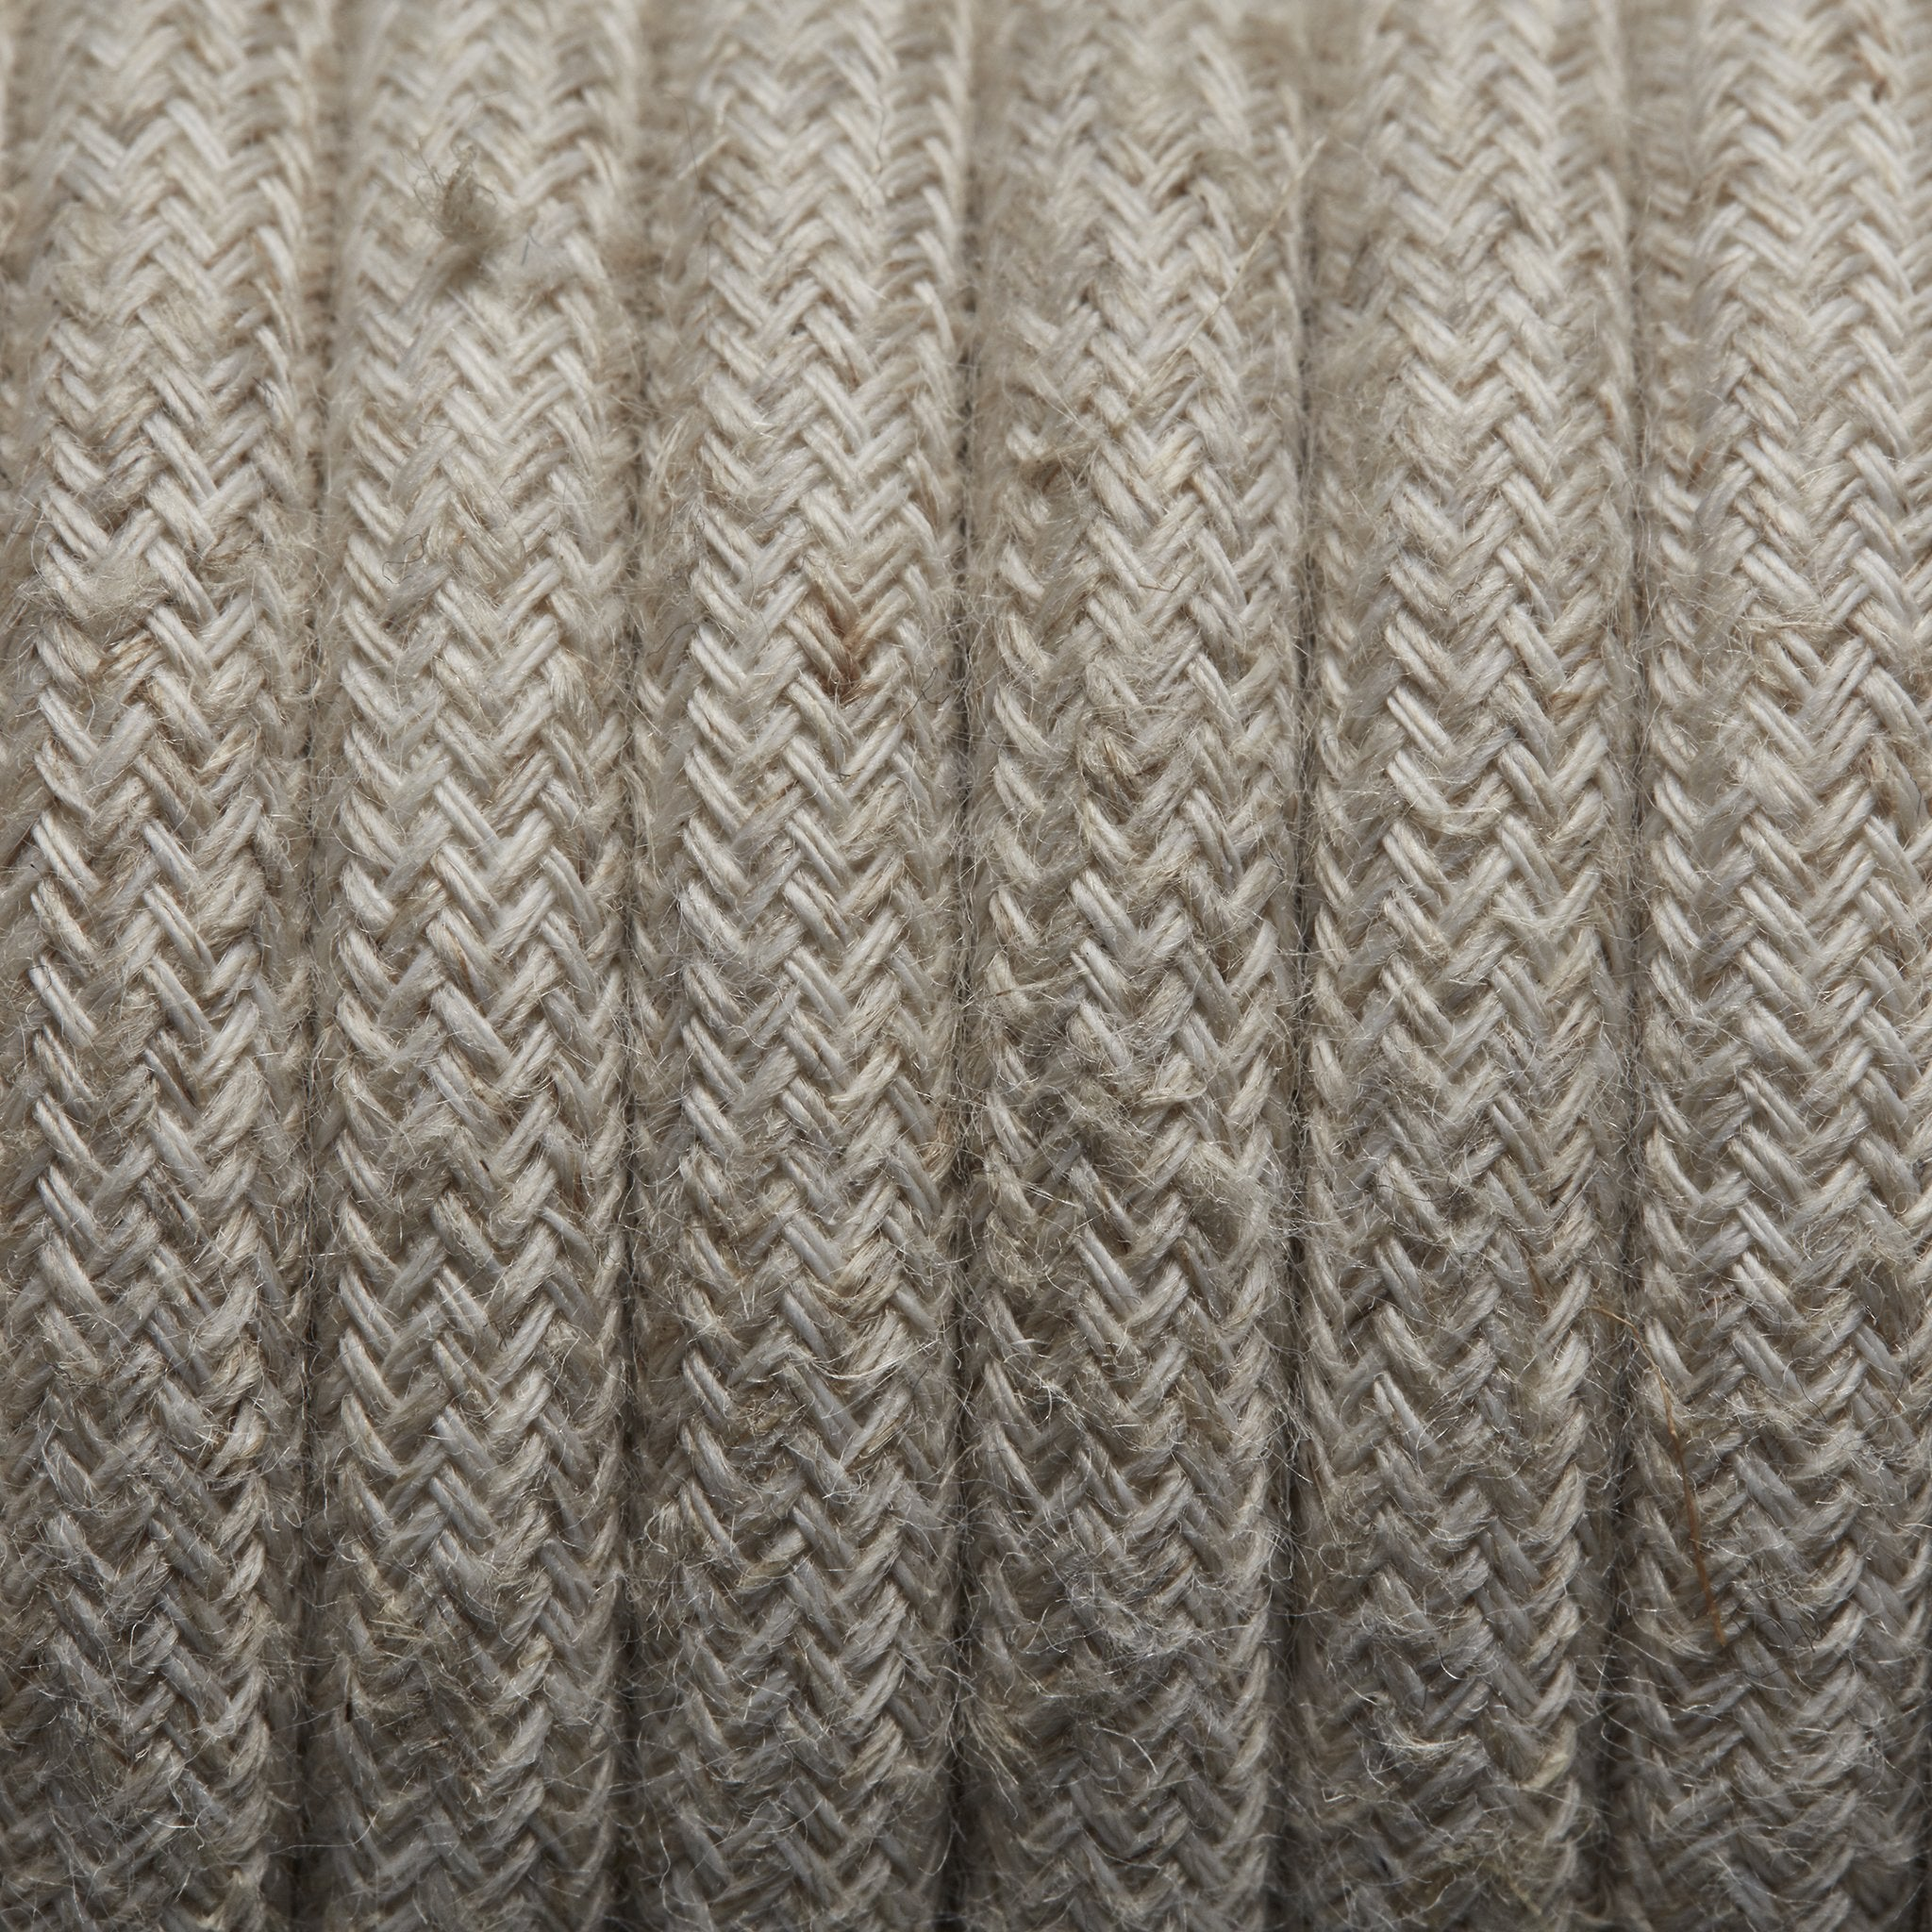 Fabric Flex - 3 Core Braided Cloth Cable Lighting Wire - Per Metre - Lighting Accessories - Industville